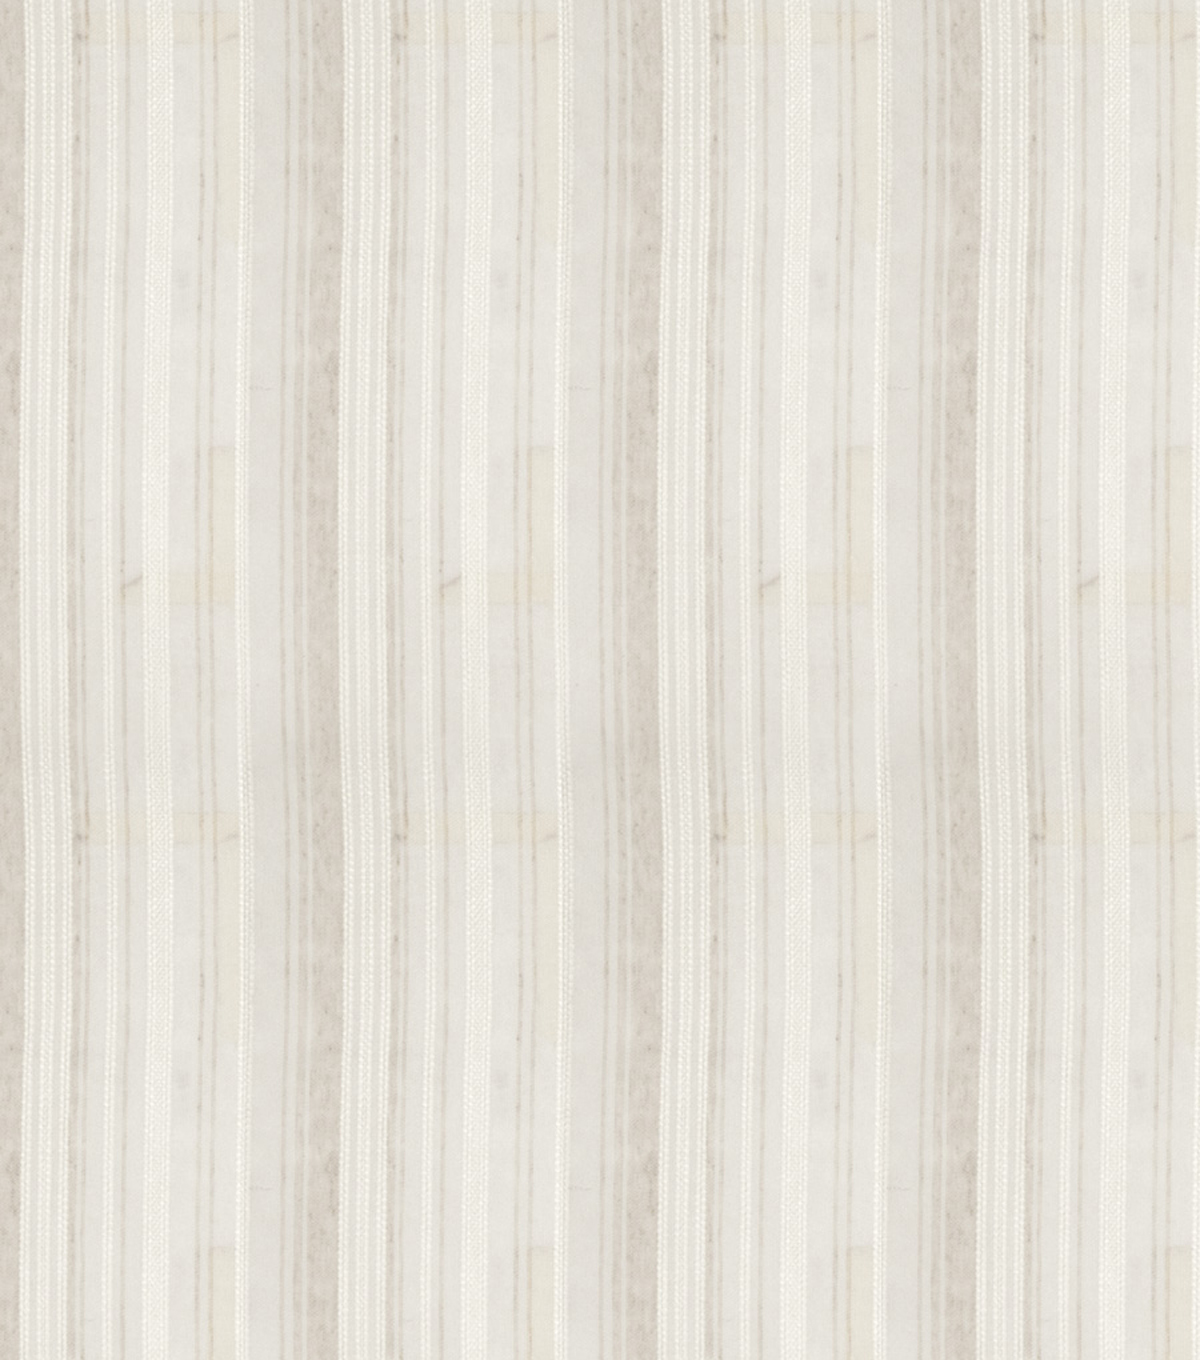 Home Decor 8\u0022x8\u0022 Fabric Swatch-Eaton Square Ashwood White